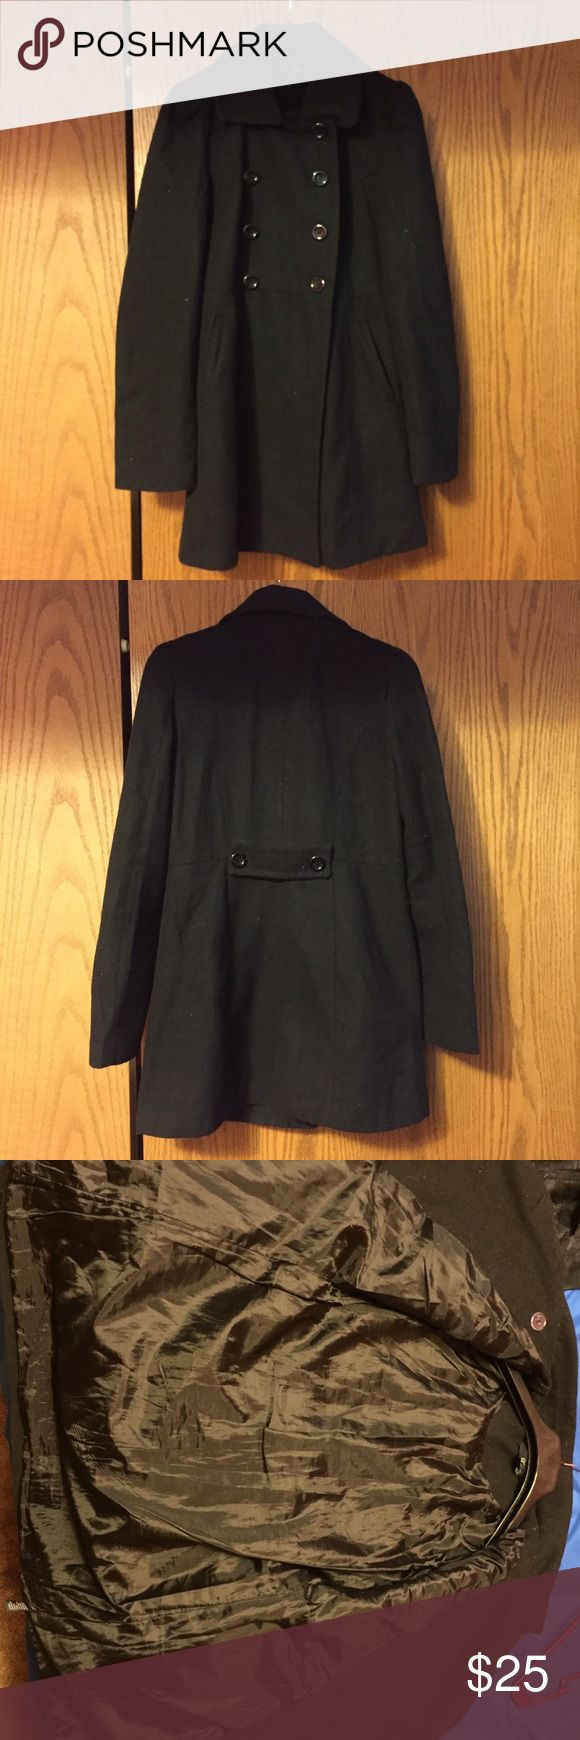 Long Black Pea Coat Long black pea coat. Warm and long enough to cover your bottom during a cold winter; it reaches a little past shorts length on my legs. Gently used. Two large pockets in the front. All buttons are present and there are 4 in the front. Xxi Jackets & Coats Pea Coats